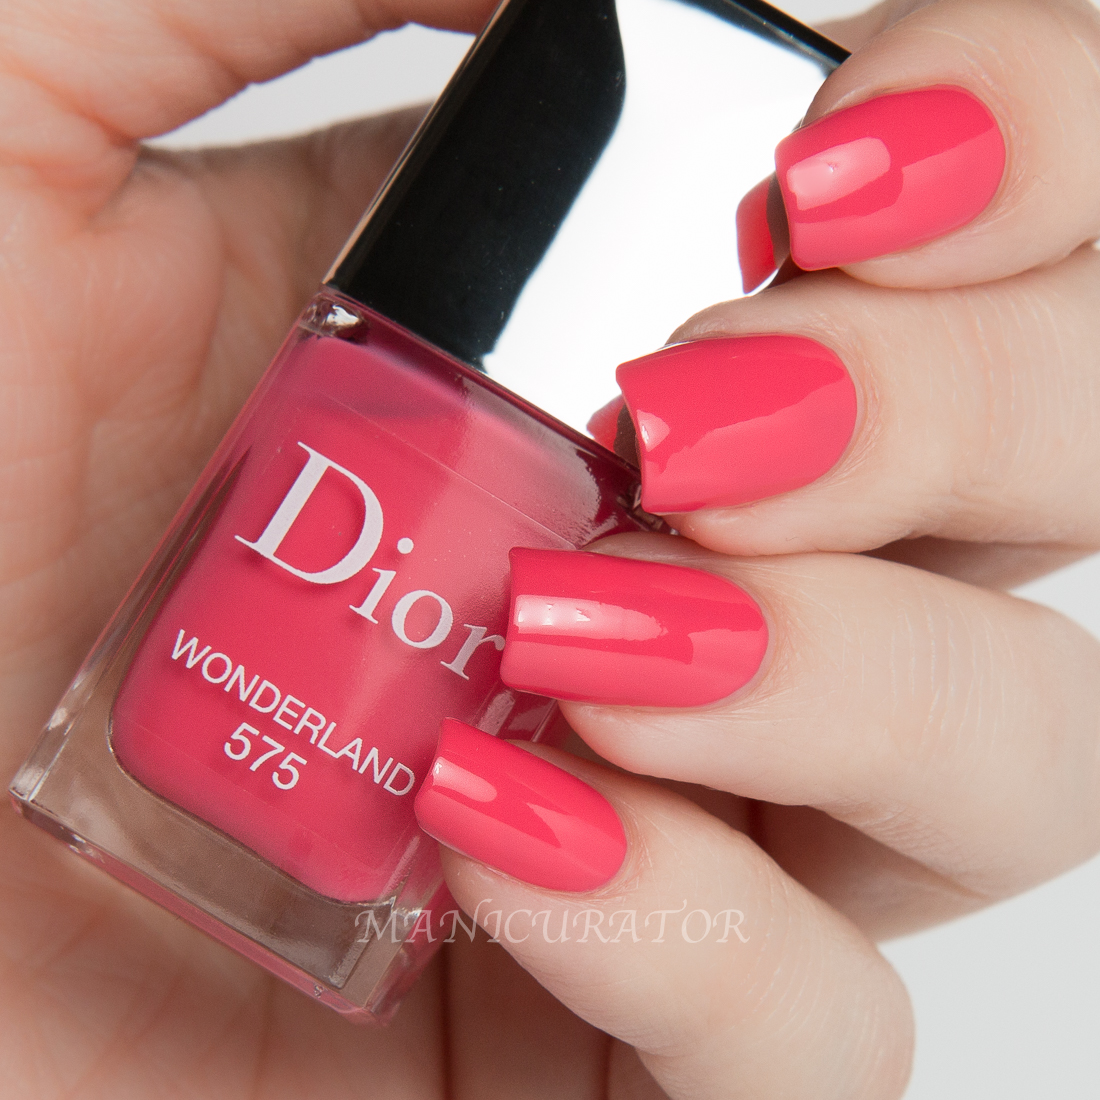 Dior-Gel-Wonderland-575-Swatch